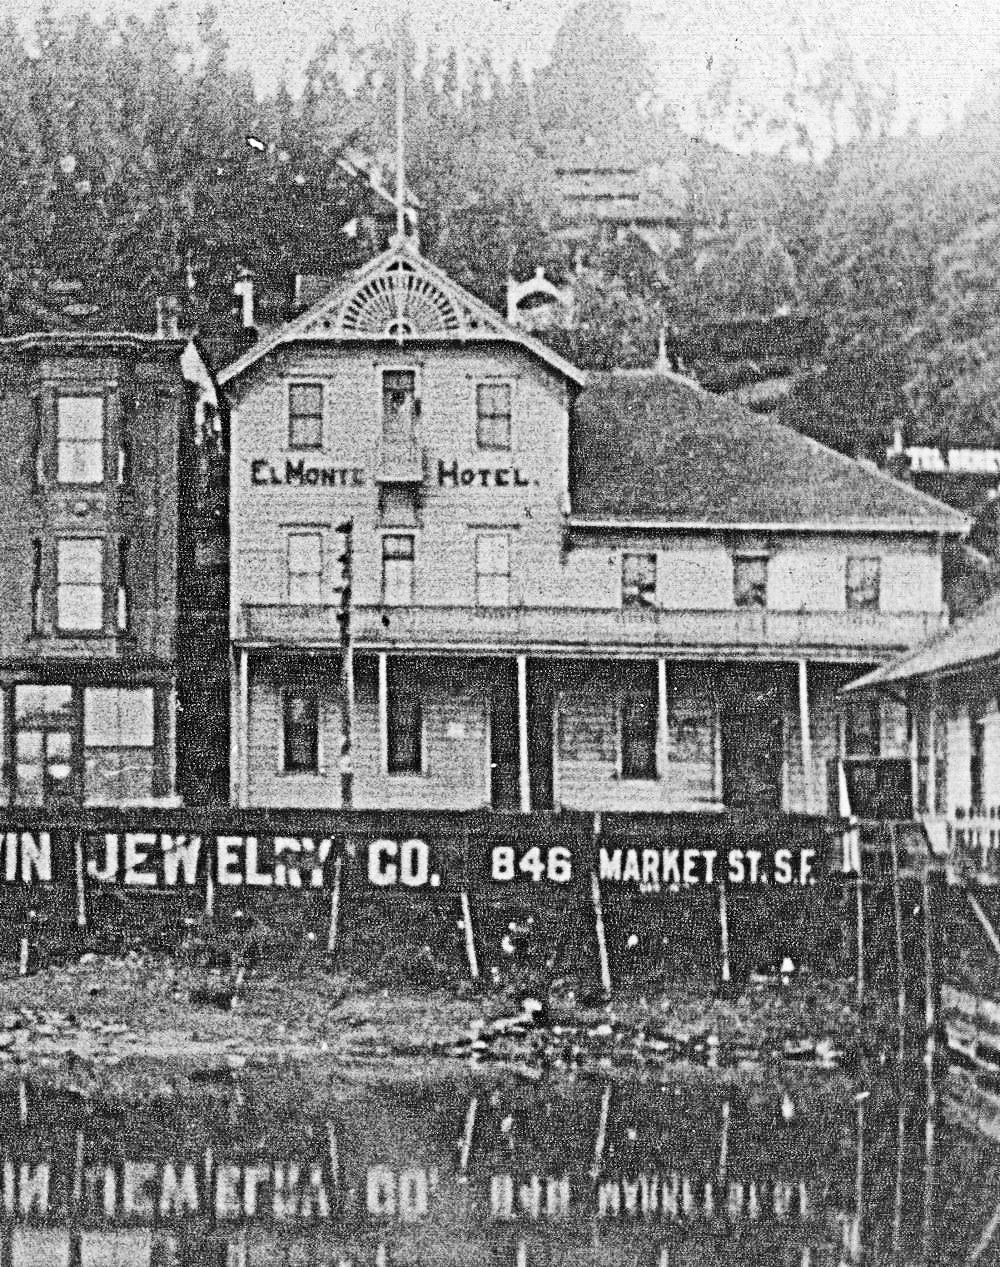 The El Monte Hotel a few years after the fire of 1893. Photo courtesy of Sausalito Historical Society